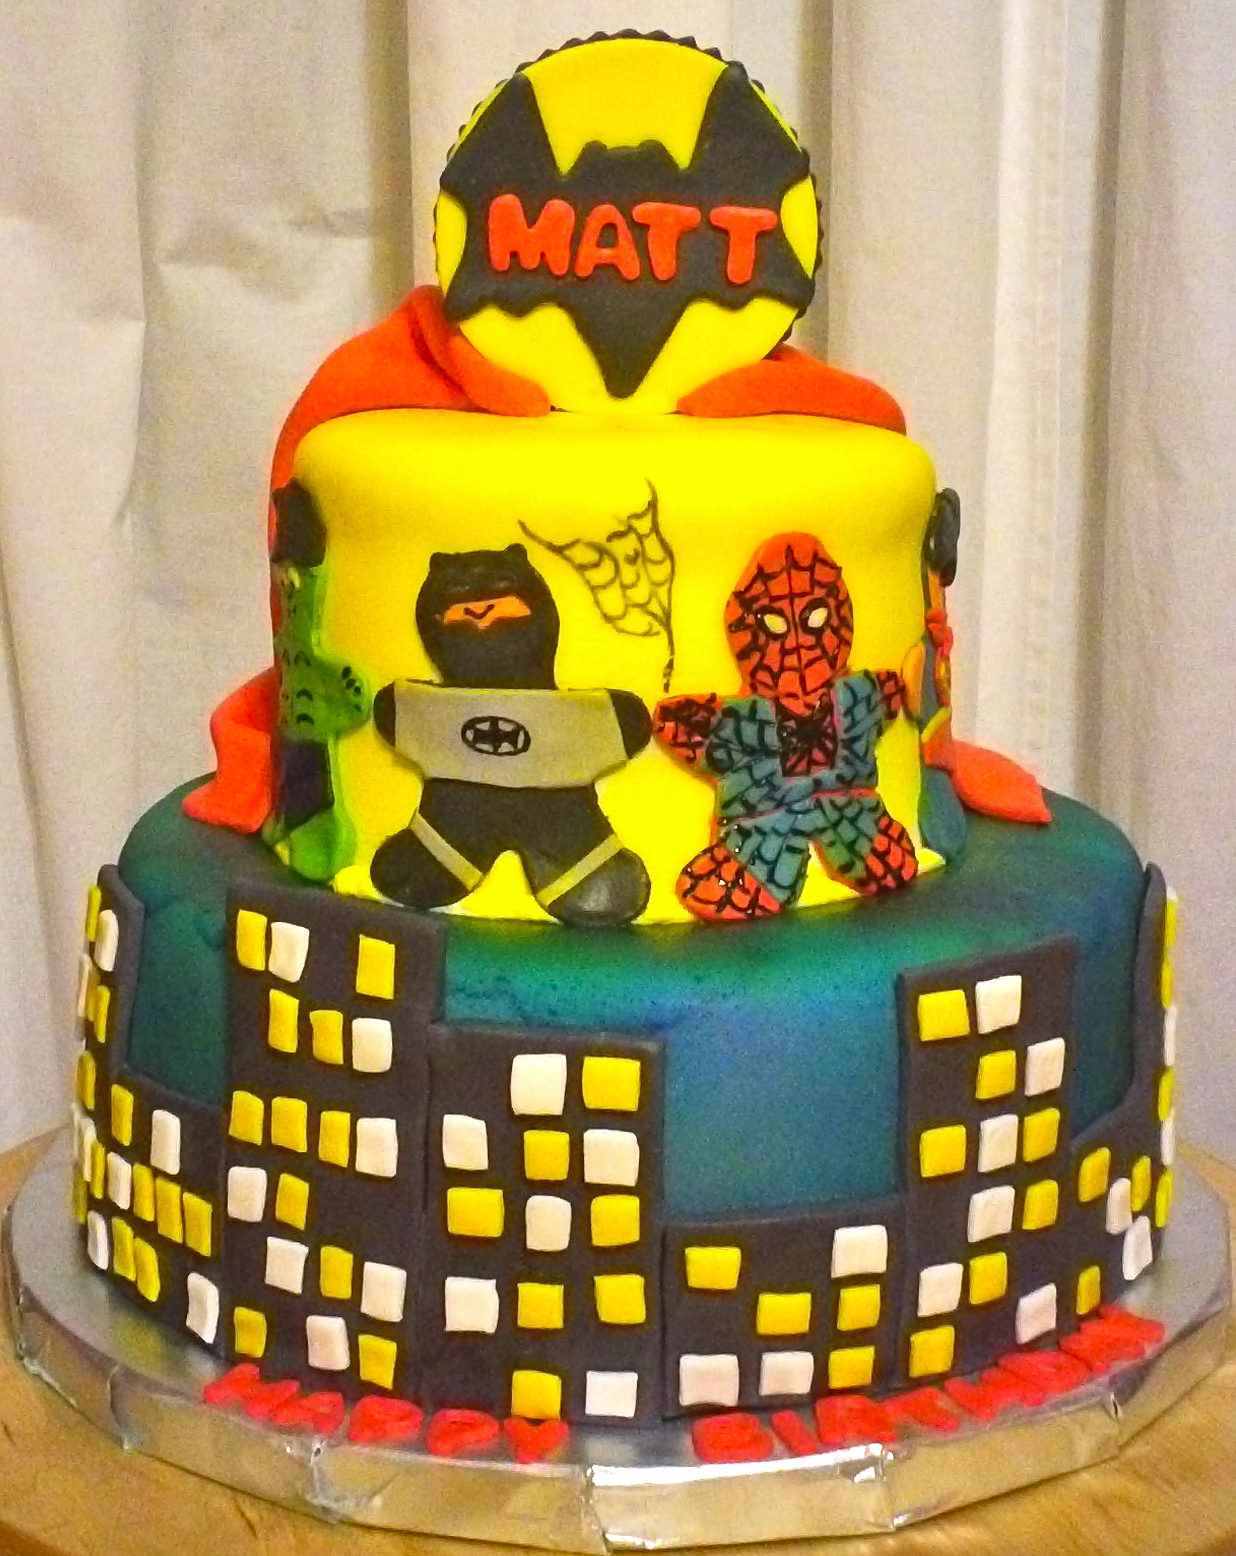 Debbies Little Cakes Marvel Super Heroes